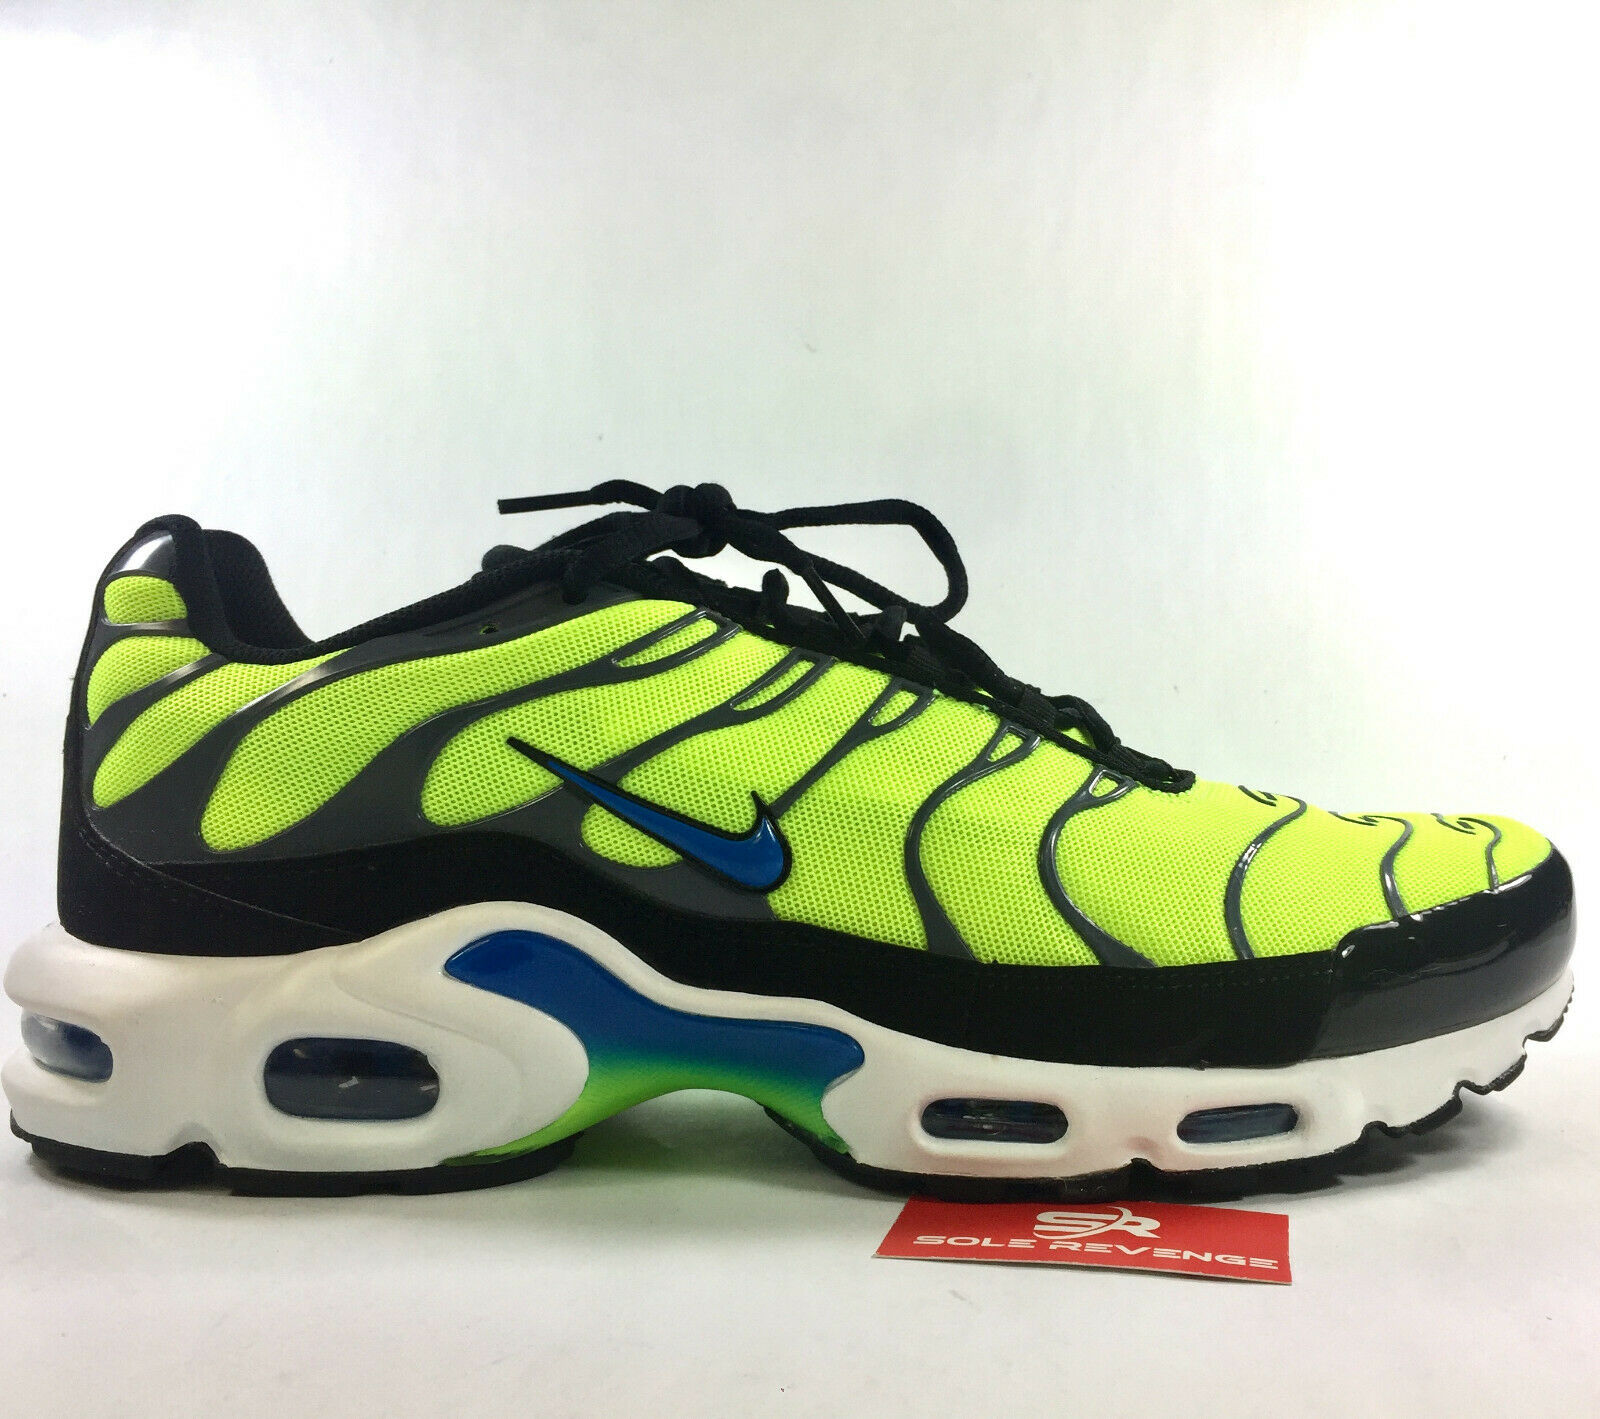 promo code 55cf4 68f29 New NIKE AIR MAX PLUS TN 52630700 Volt/Photo Blue/Black/Dark Grey Tuned Air  c1